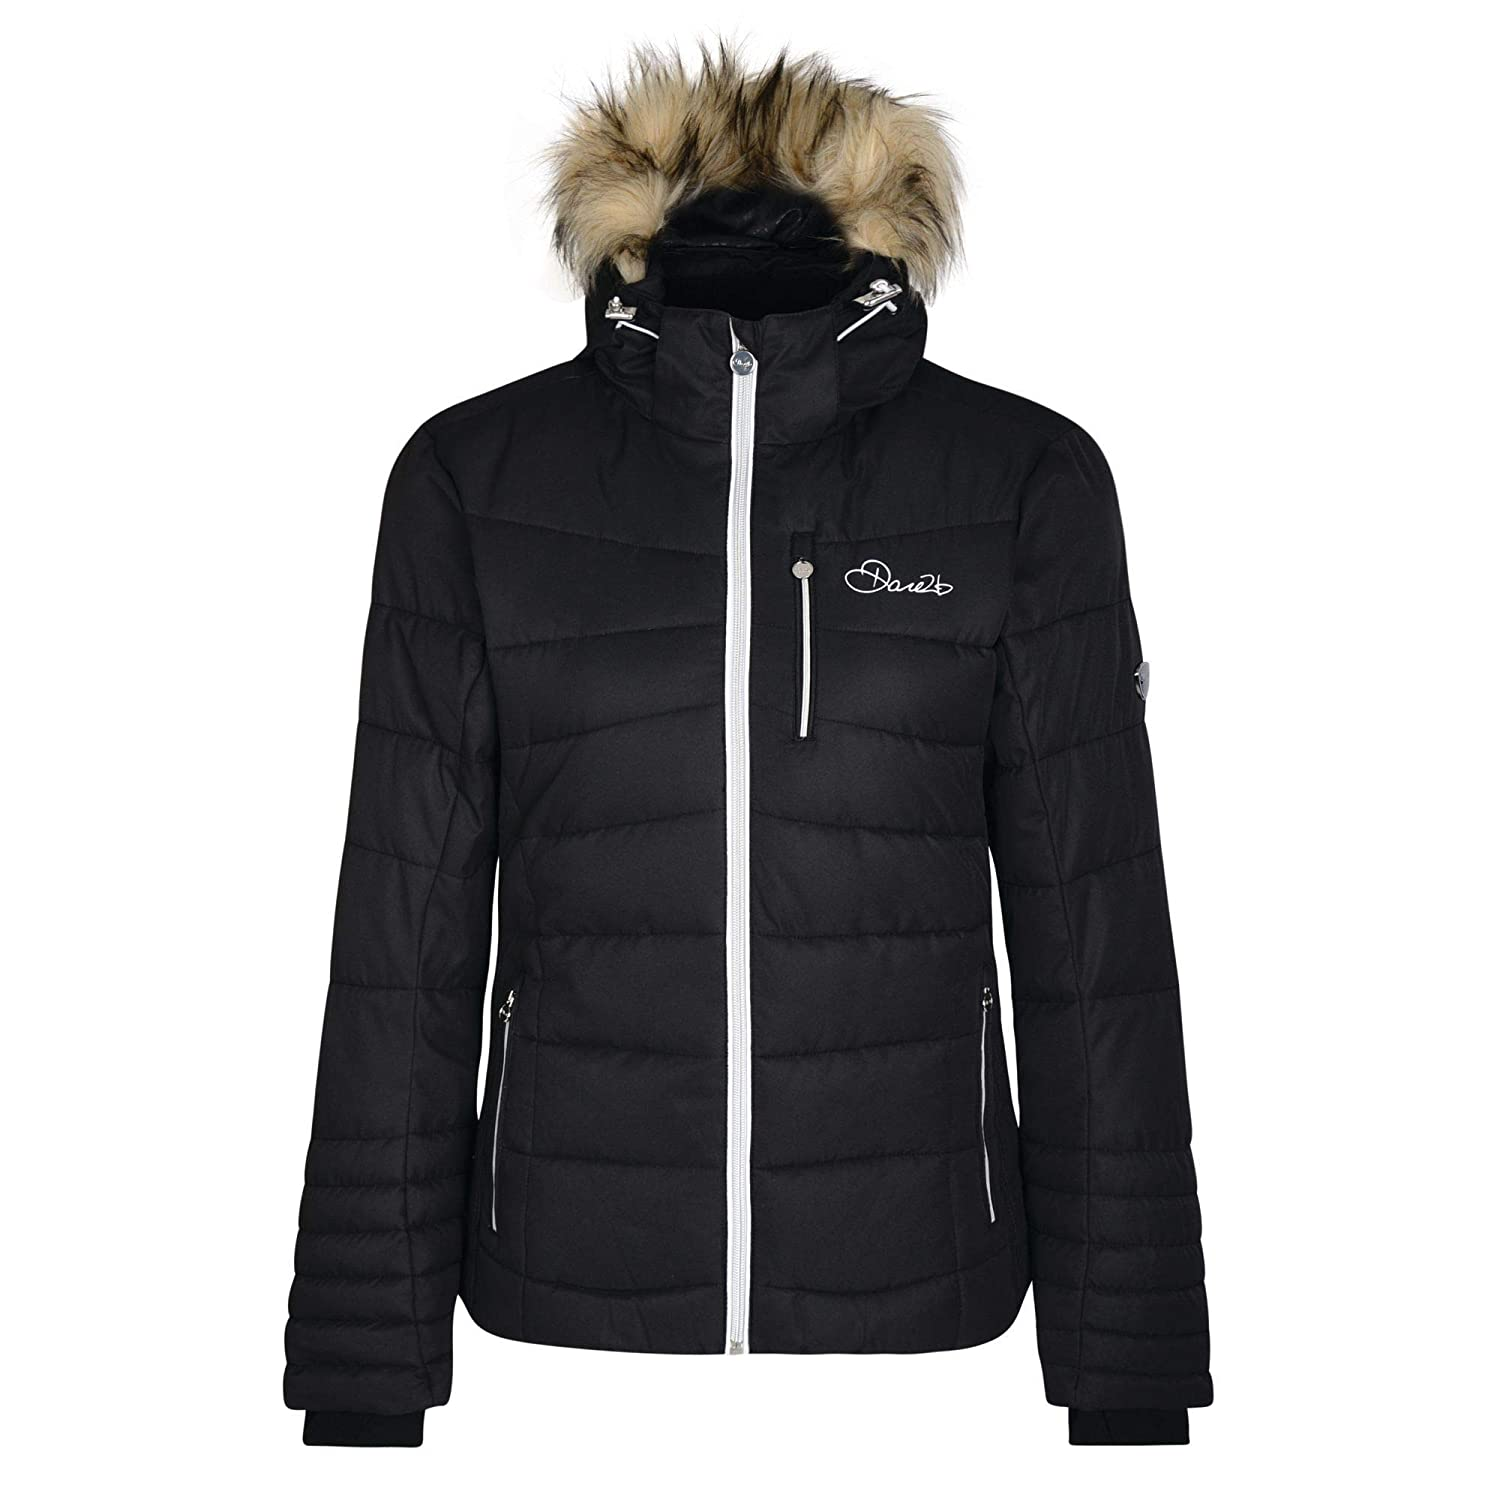 0ec703b17d Dare 2b Women s Curator and Breathable Ski Waterproof Insulated Jacket   Amazon.co.uk  Sports   Outdoors